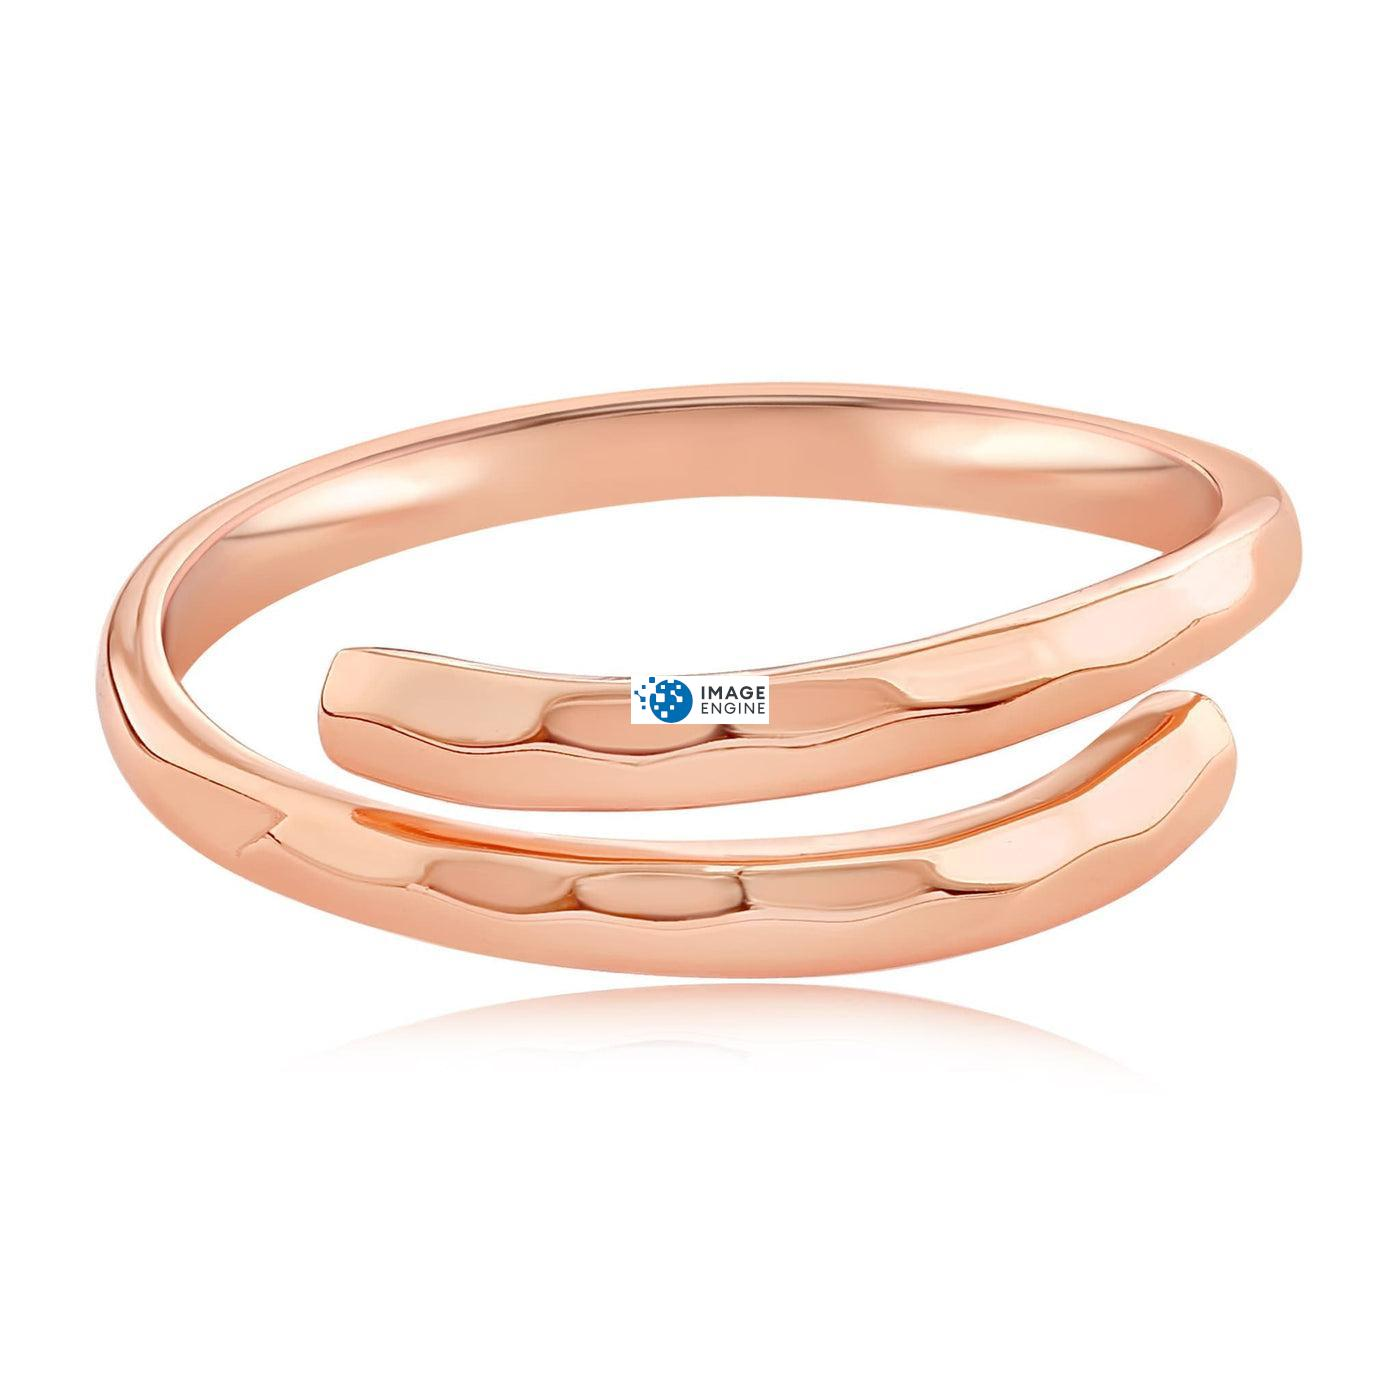 Minimalist Thumb Ring - Front View Facing Down - 18K Rose Gold Vermeil.